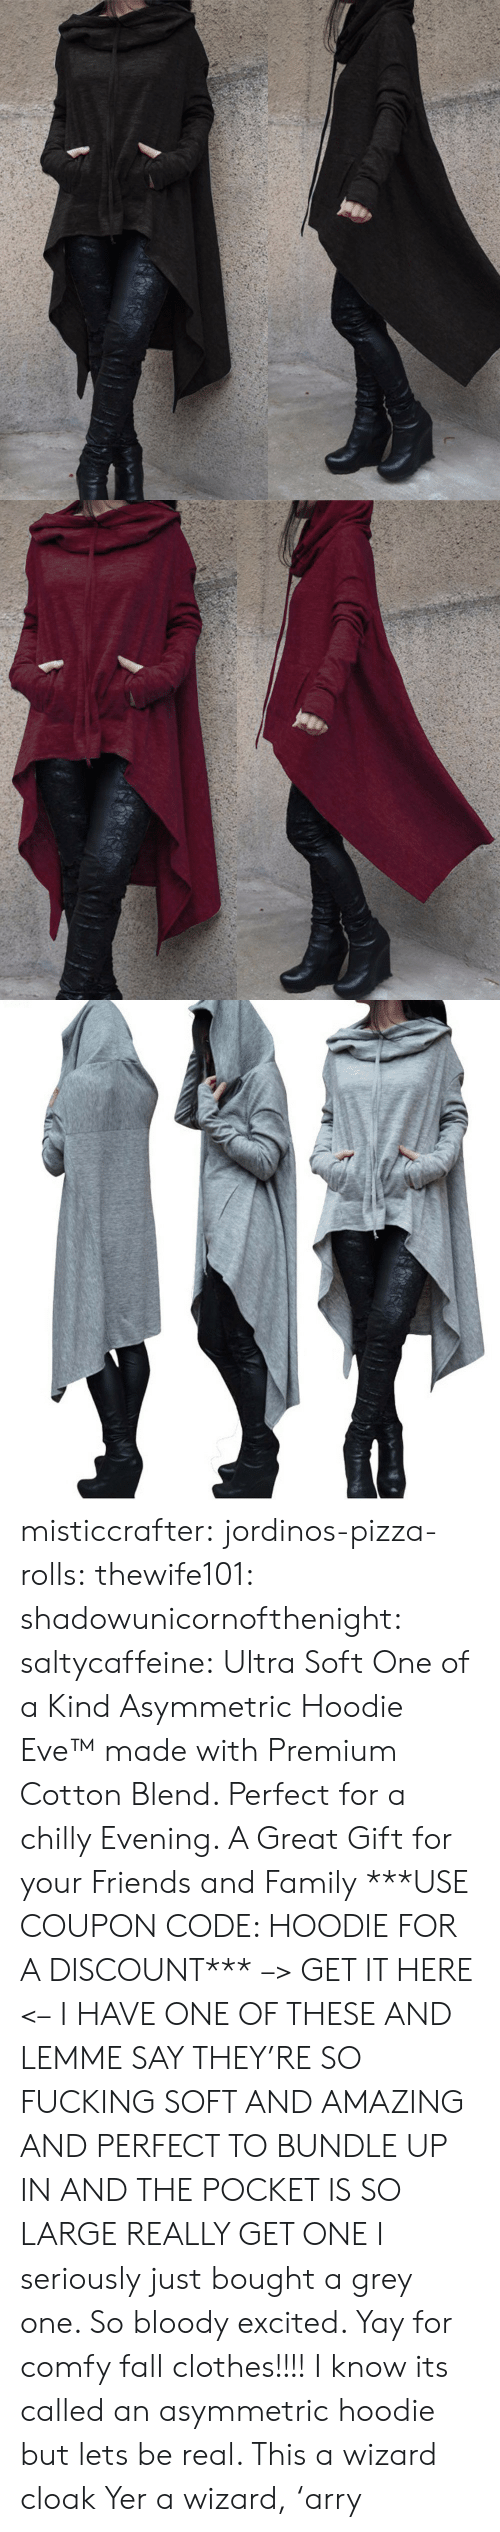 Clothes, Fall, and Family: misticcrafter: jordinos-pizza-rolls:  thewife101:  shadowunicornofthenight:  saltycaffeine:  Ultra Soft One of a Kind Asymmetric Hoodie Eve™made with Premium Cotton Blend. Perfect for a chilly Evening. A Great Gift for your Friends and Family ***USE COUPON CODE: HOODIE FOR A DISCOUNT*** –> GET IT HERE <–   I HAVE ONE OF THESE AND LEMME SAY THEY'RE SO FUCKING SOFT AND AMAZING AND PERFECT TO BUNDLE UP IN AND THE POCKET IS SO LARGE REALLY GET ONE   I seriously just bought a grey one. So bloody excited. Yay for comfy fall clothes!!!!    I know its called an asymmetric hoodie but lets be real. This a wizard cloak  Yer a wizard,'arry